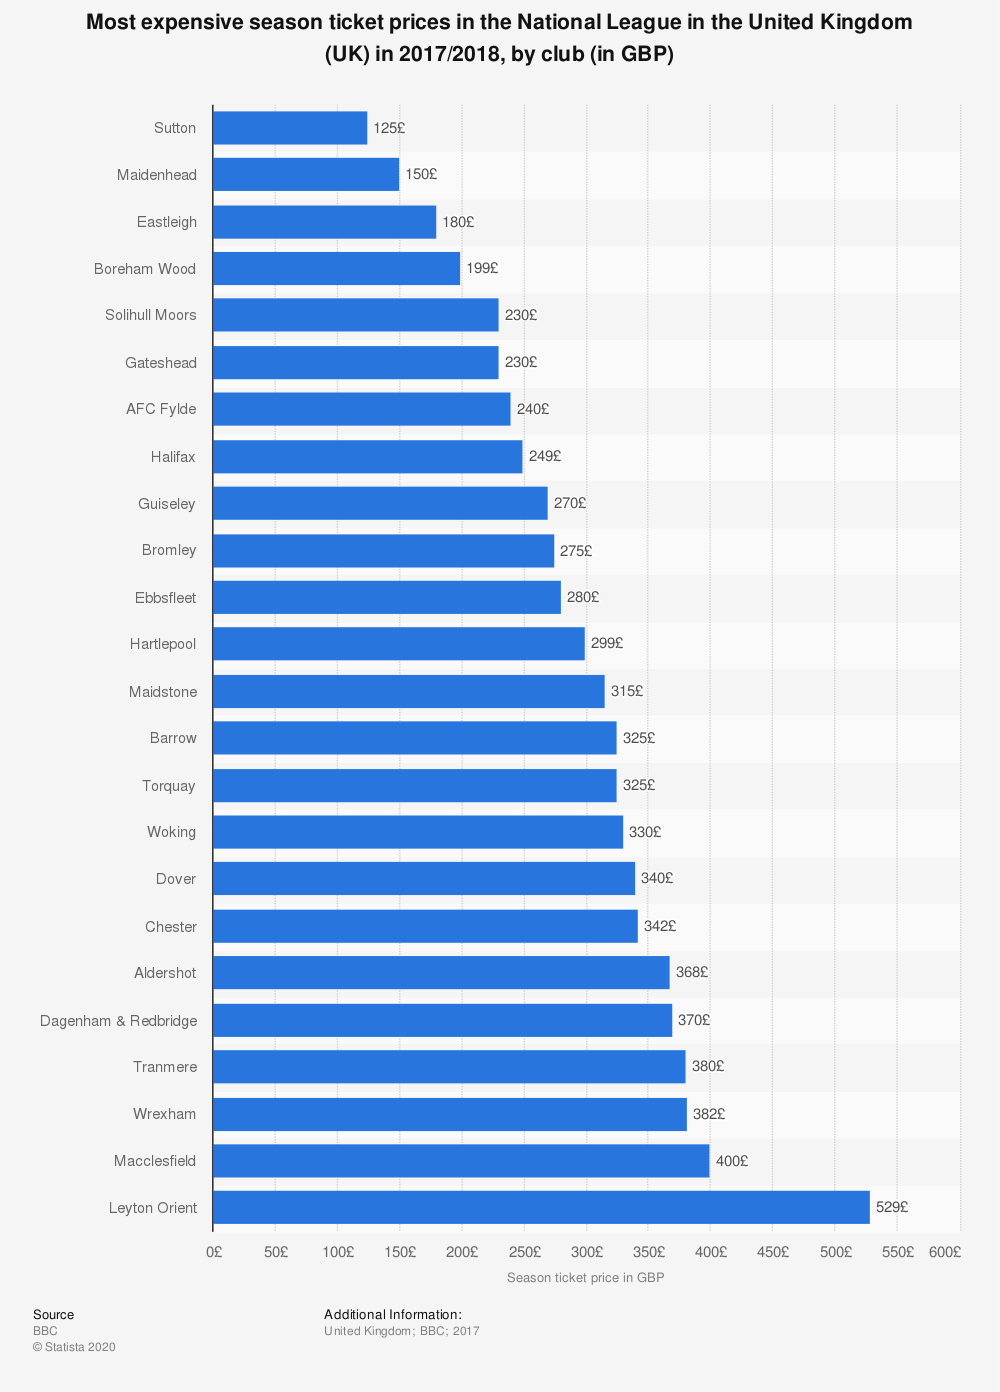 Statistic: Most expensive season ticket prices in the National League in the United Kingdom (UK) in 2017/2018, by club (in GBP) | Statista